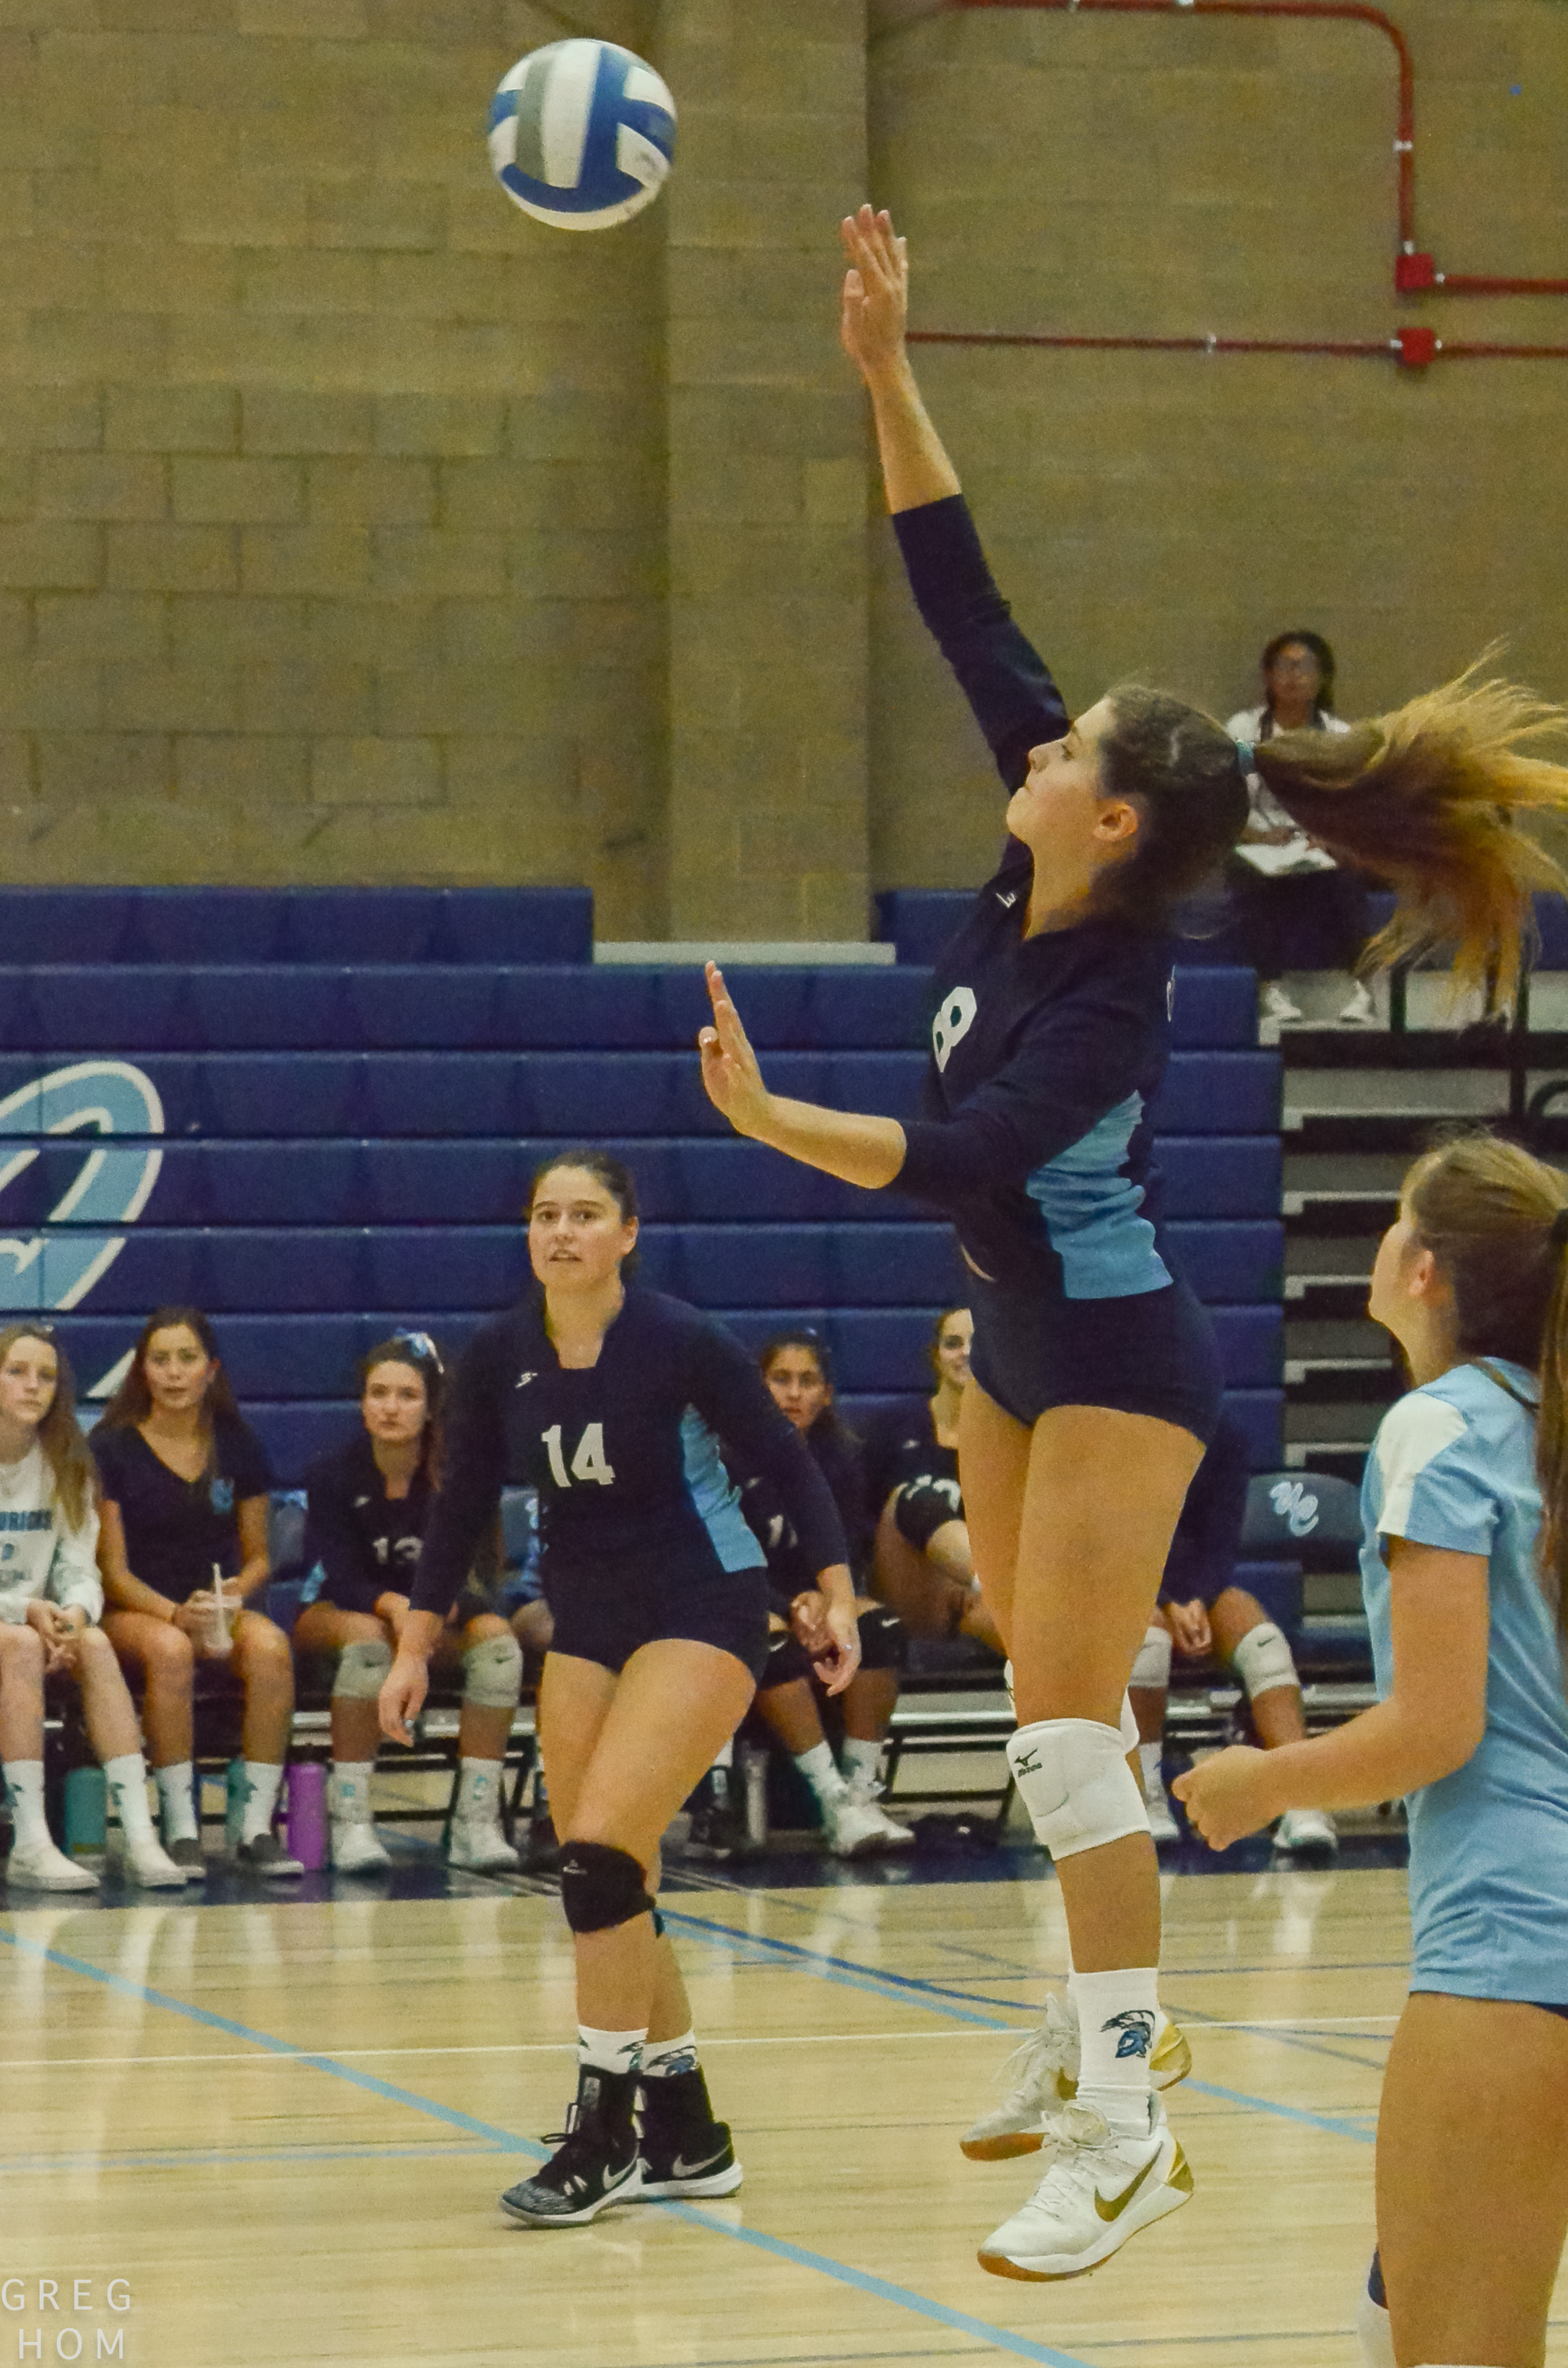 Volleyball vs OLP 9/20  pictures by Greg Hom